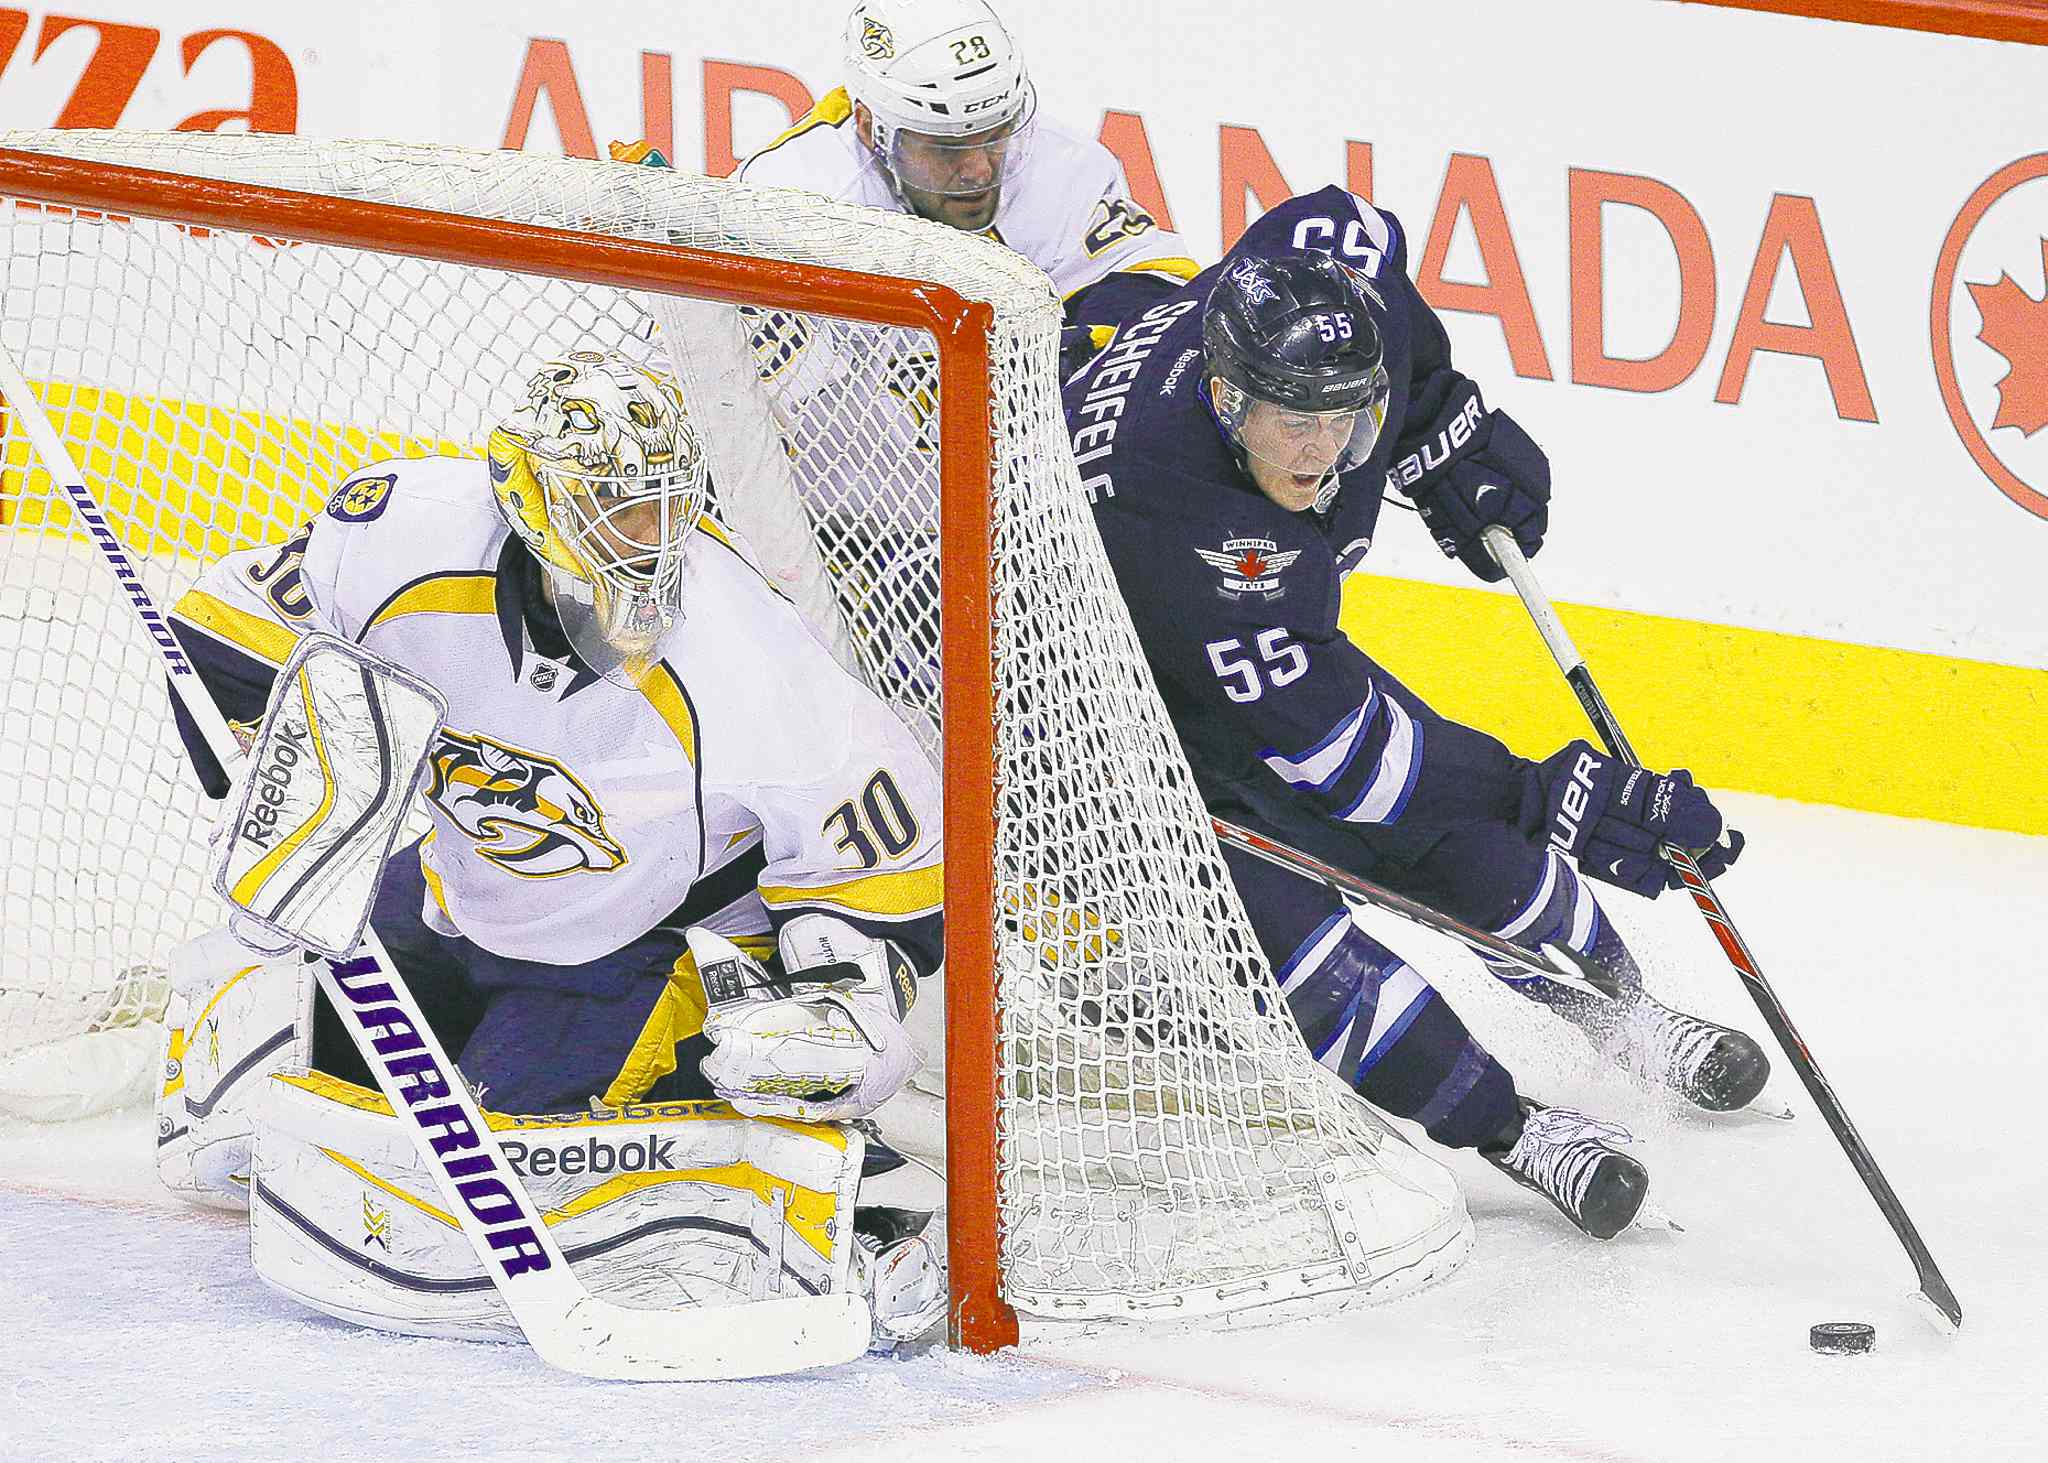 Winnipeg rookie centre Mark Scheifele (55), an emerging star, is a member of the youngest roster in the NHL.